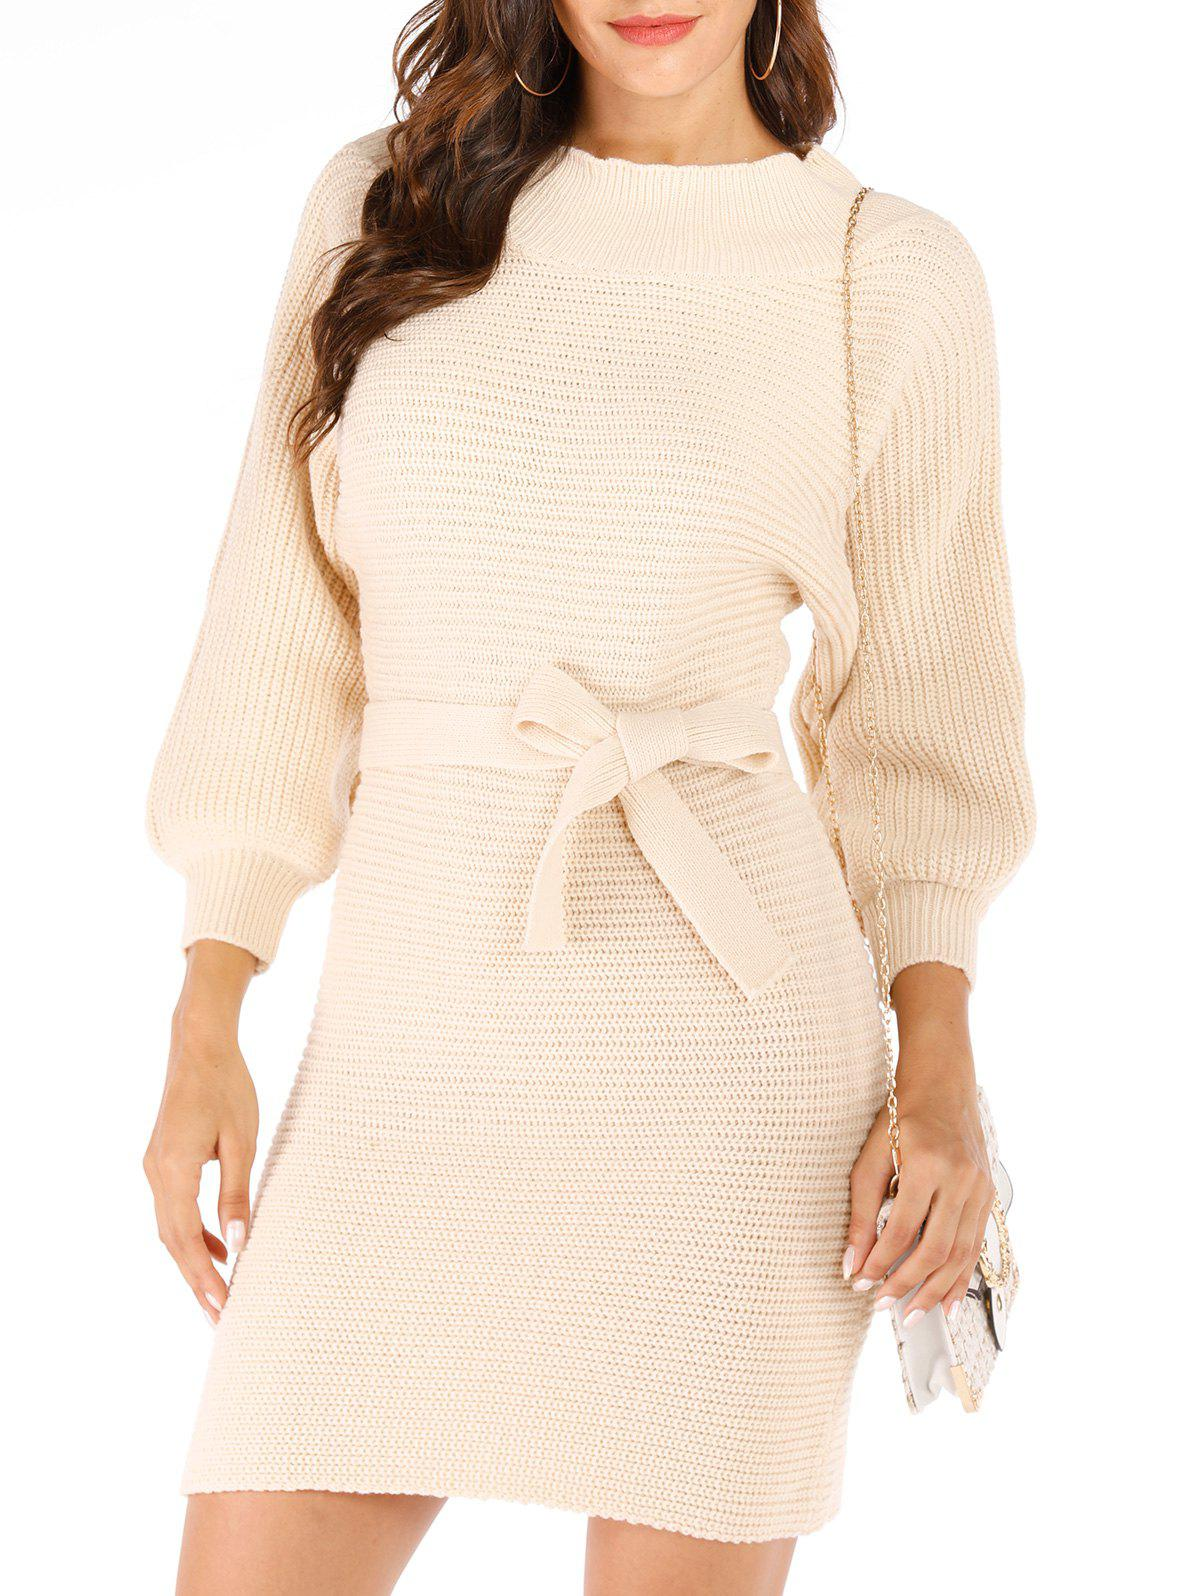 Risultati immagini per Convertible Bodycon Jumper Dress